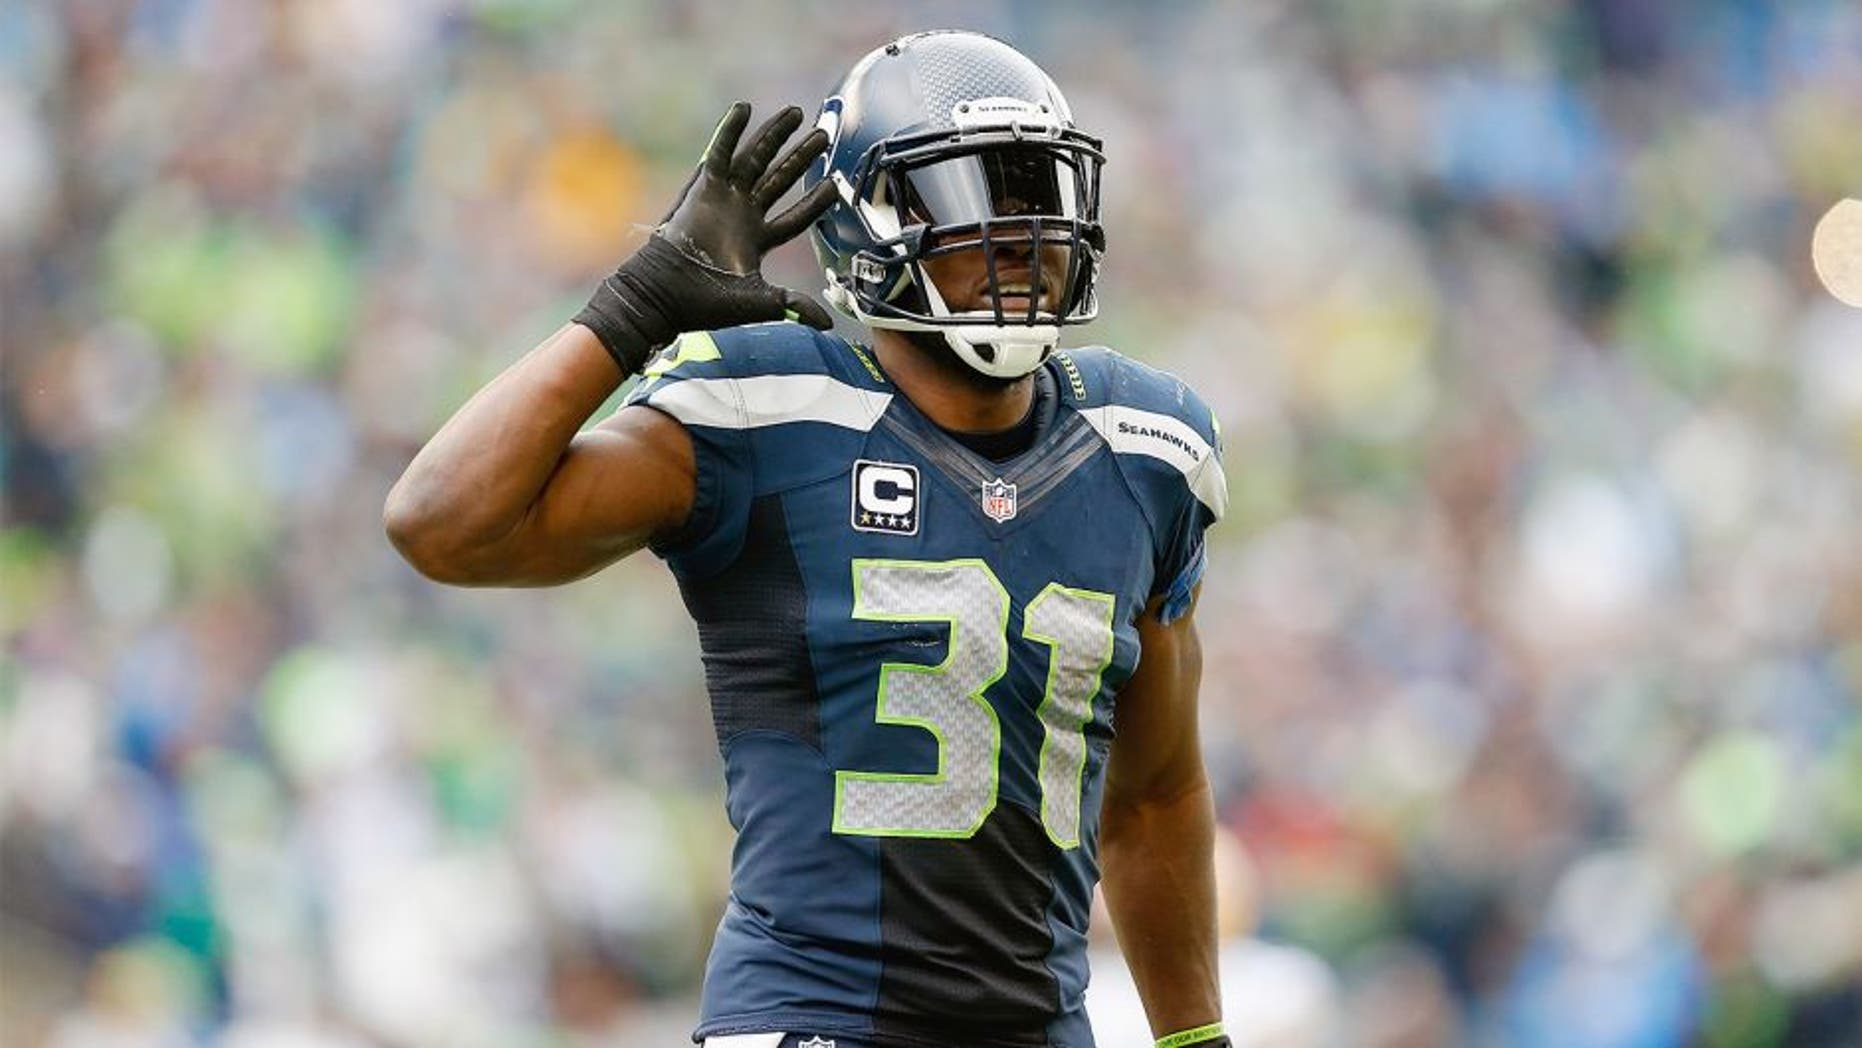 SEATTLE, WA - JANUARY 18: Strong safety Kam Chancellor #31 of the Seattle Seahawks reacts in the 2015 NFC Championship game against the Green Bay Packers at CenturyLink Field on January 18, 2015 in Seattle, Washington. The Seahawks defeated the Packers 28-22 in overtime. (Photo by Christian Petersen/Getty Images)